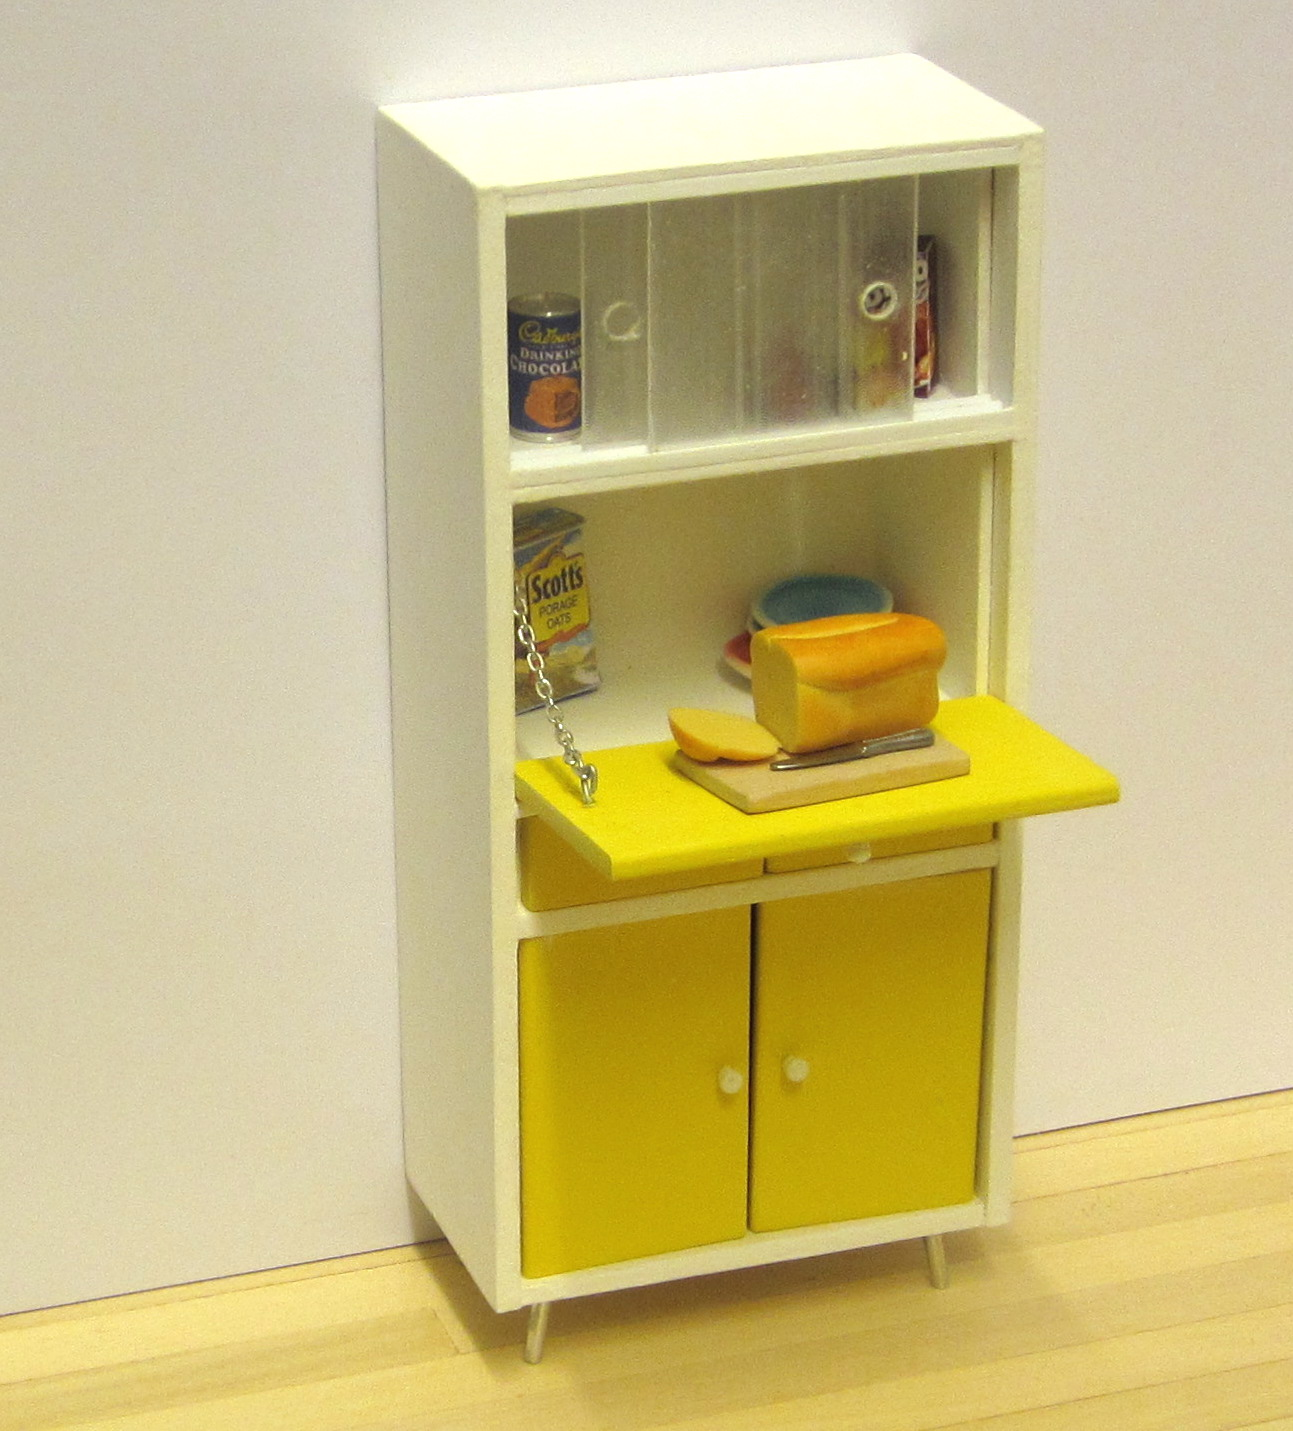 RETRO Kitchen cabinet